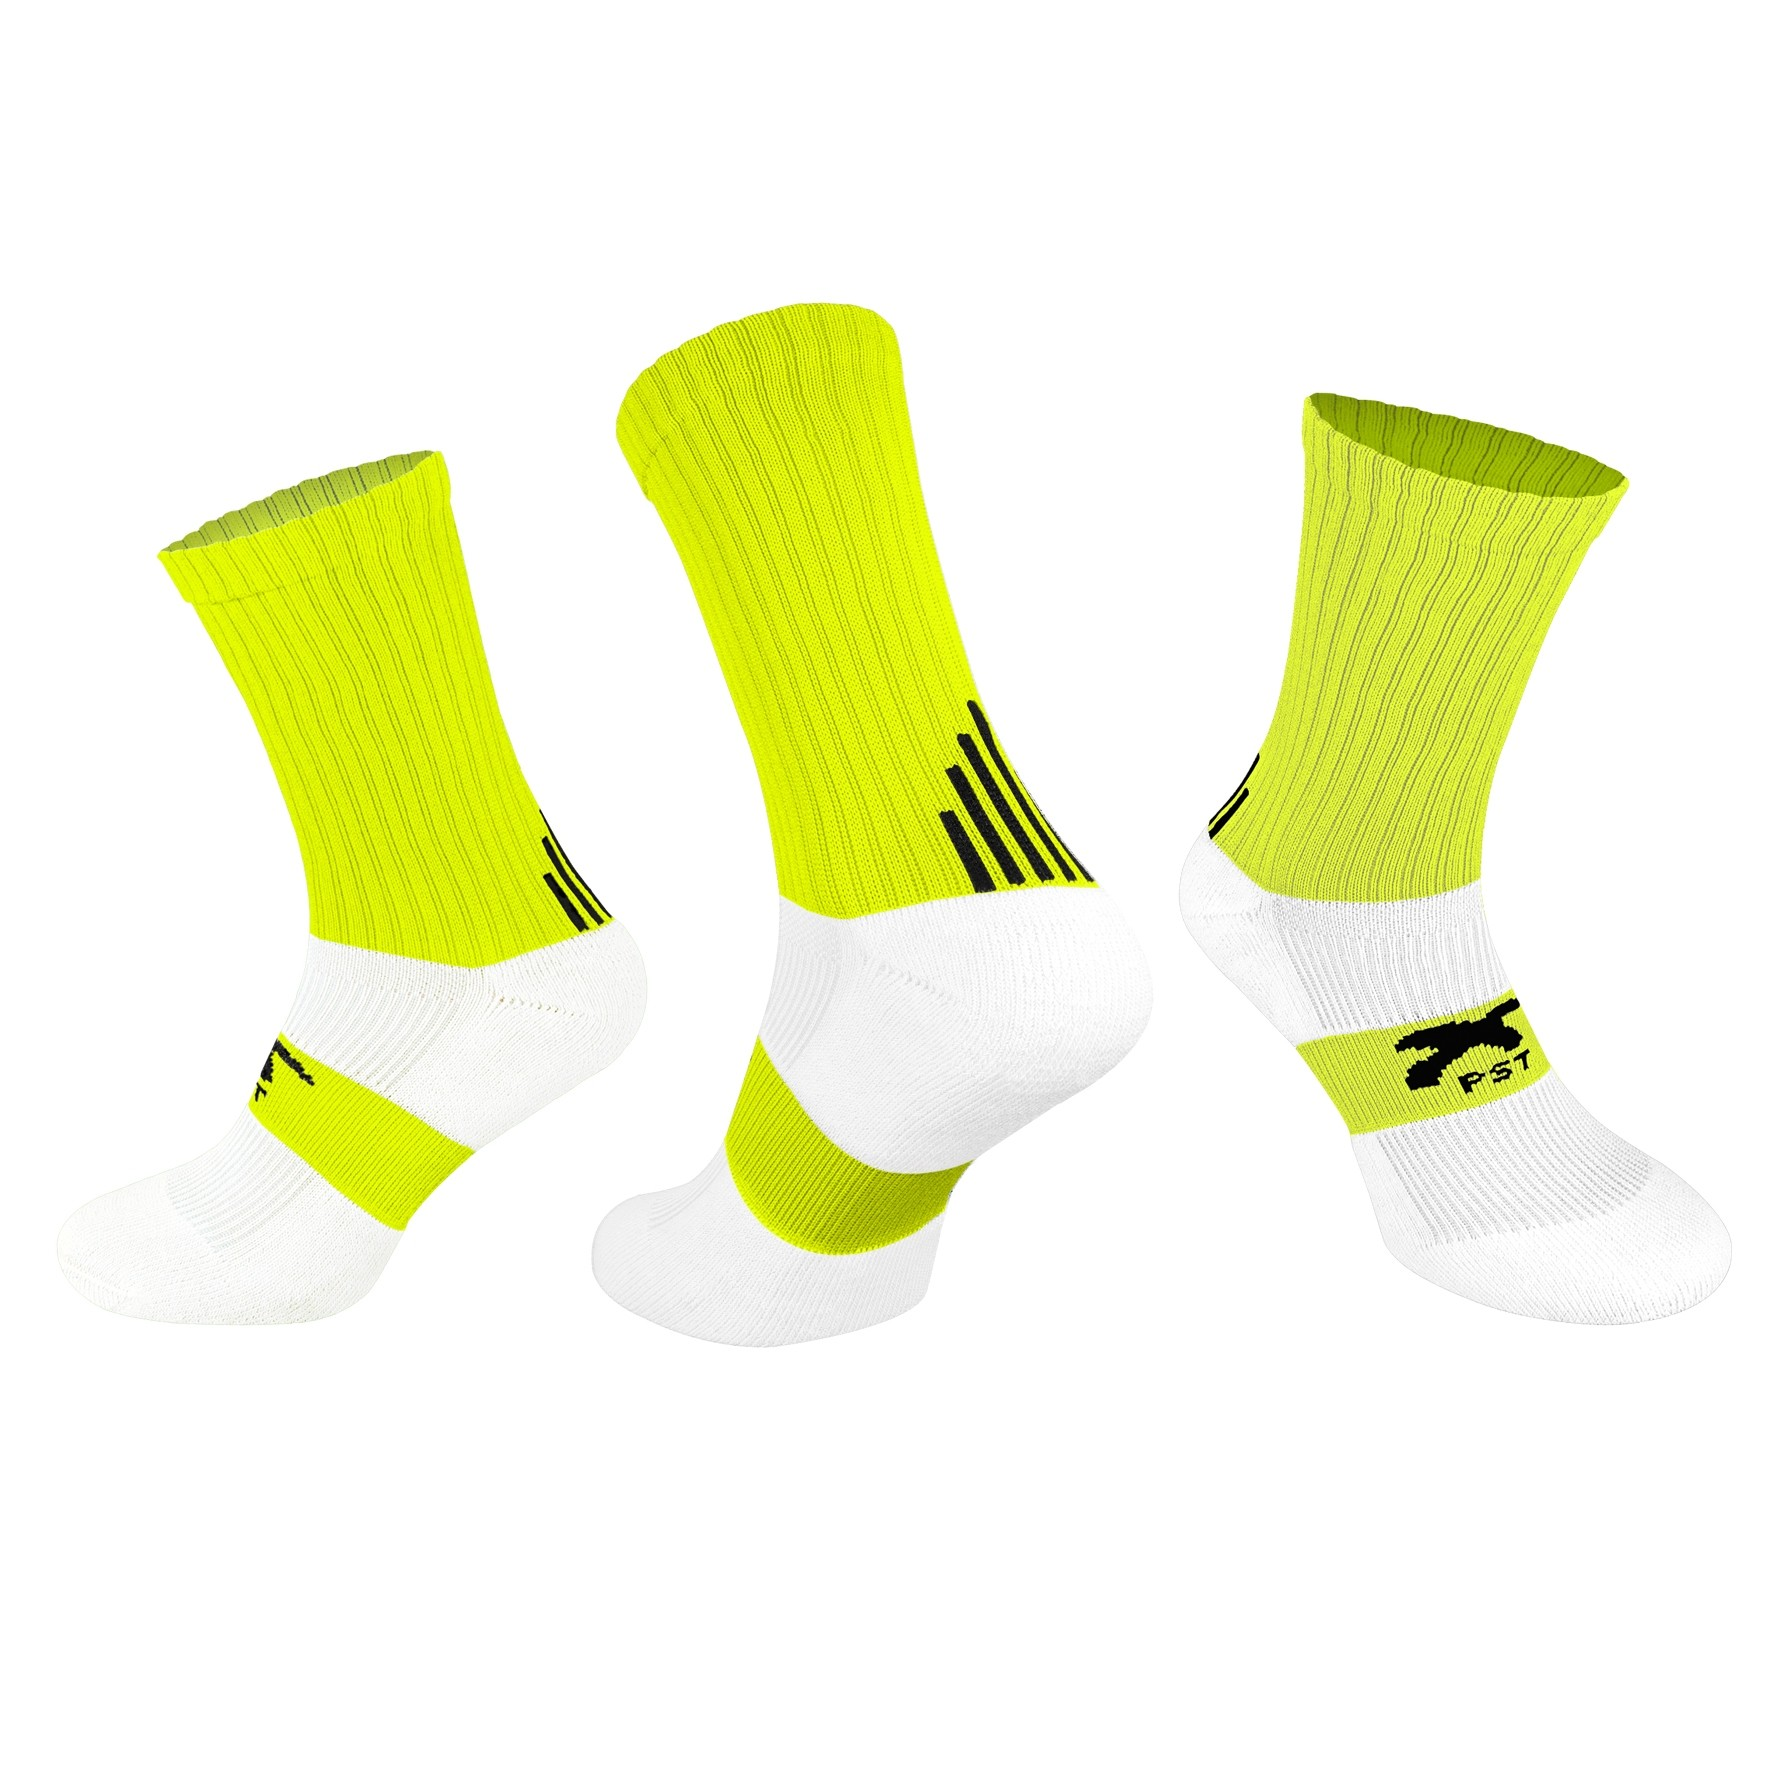 PST Crew Socks - Neon Yellow